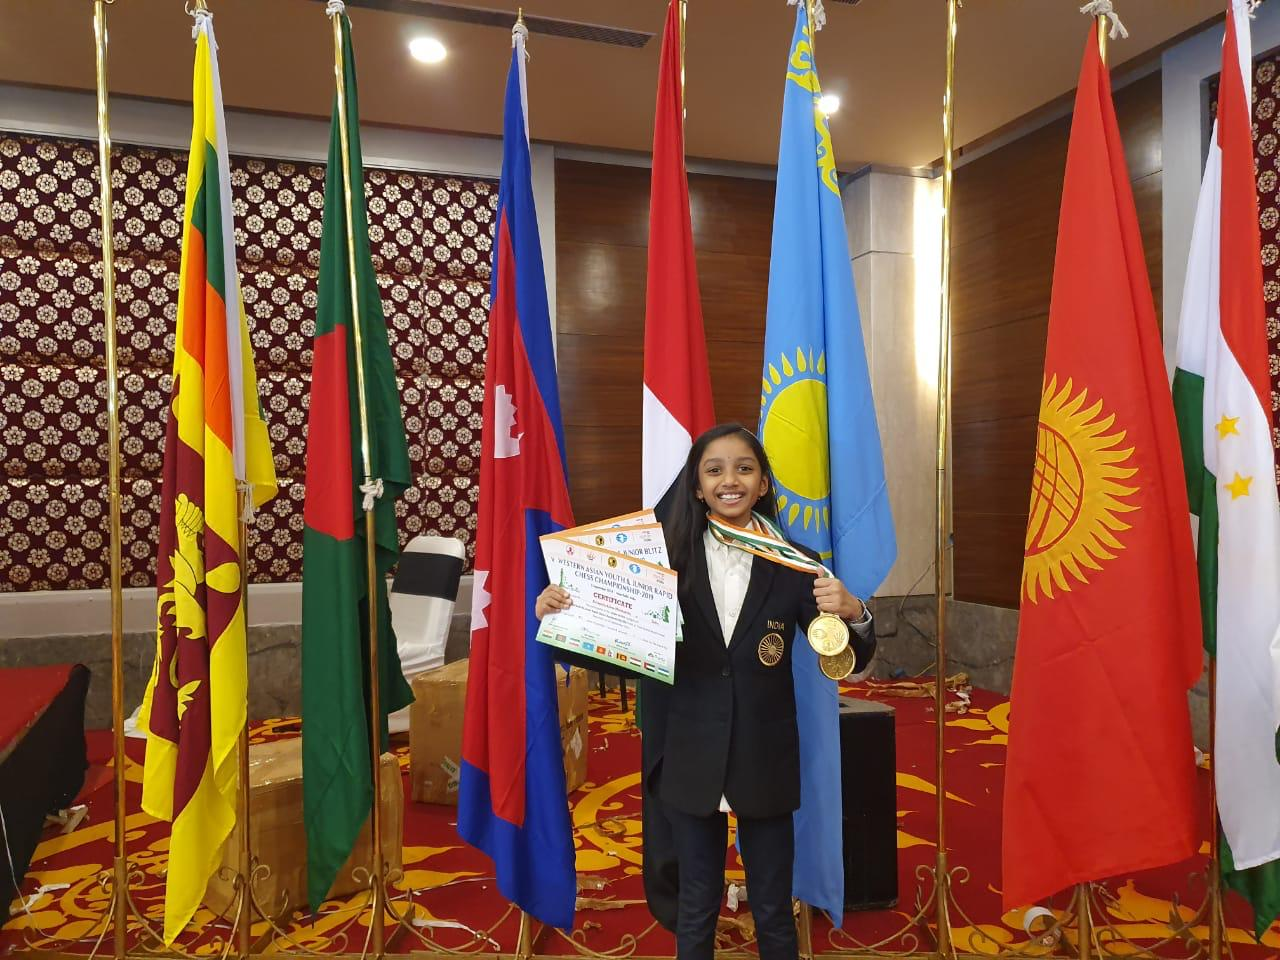 You are currently viewing Congratulations to Alana Meenakshi for coming First in Rapid & Blitz in Western Asia under 8 Girls championship 2019!